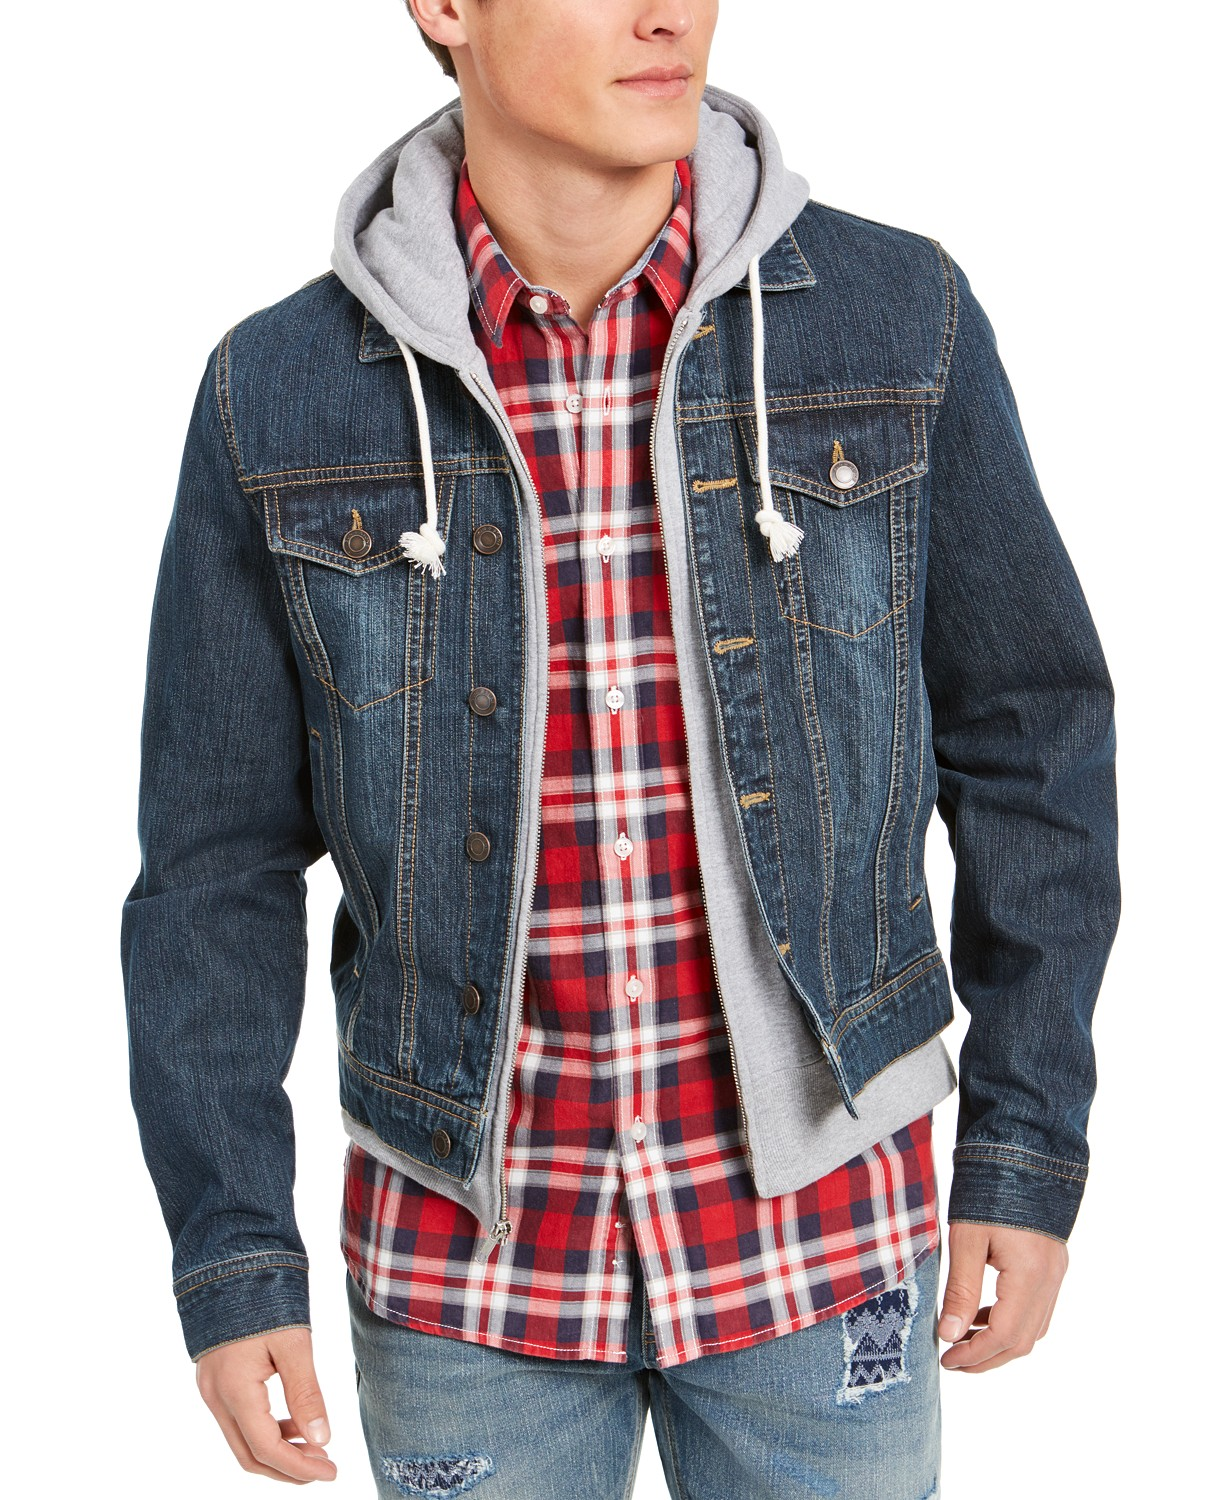 Sun + Stone Men?s Hooded Denim Trucker Jacket (3 styles)